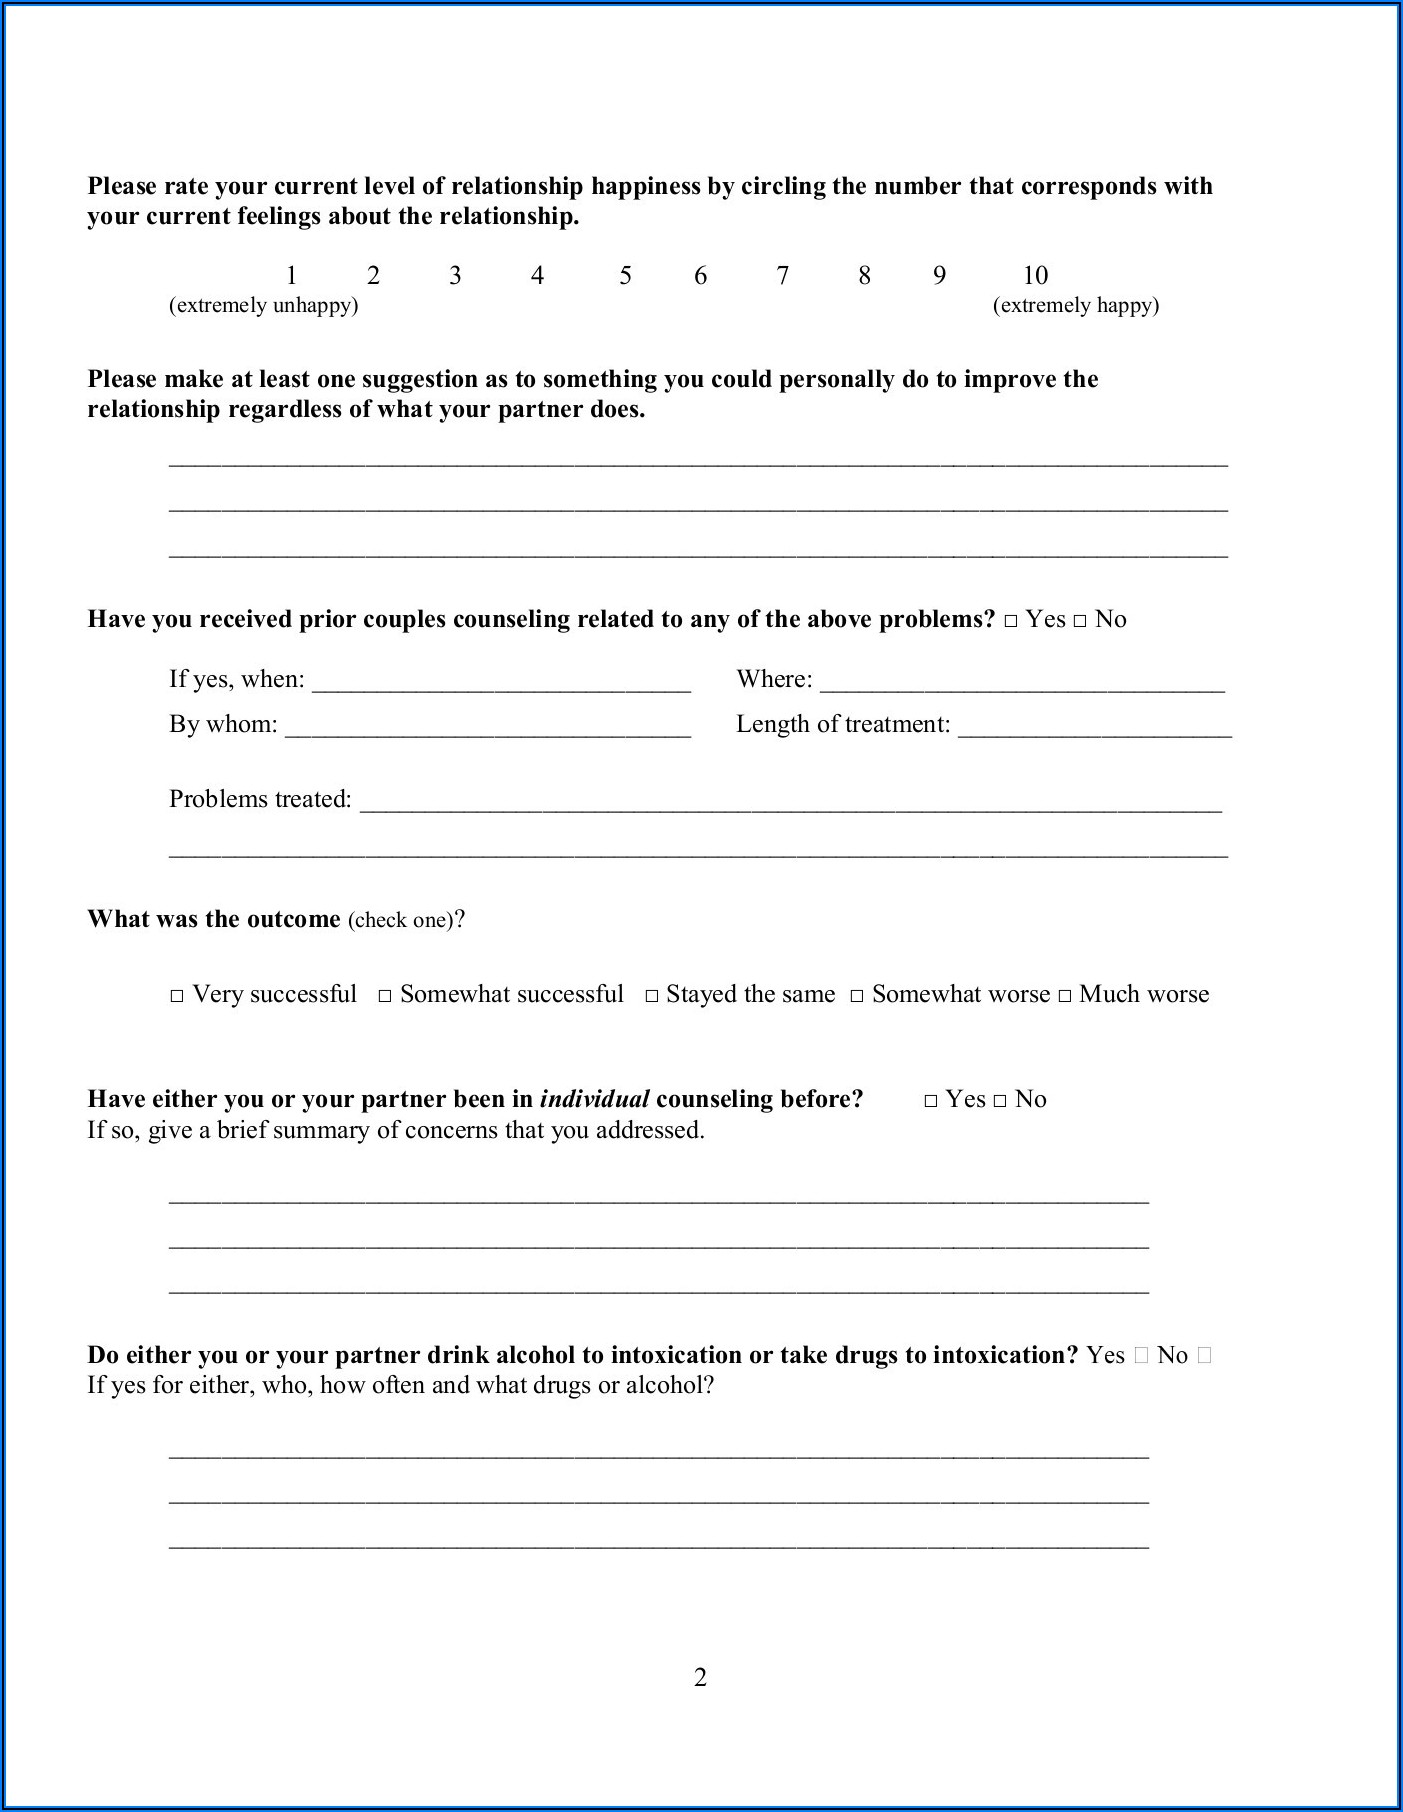 Marriage Counseling Intake Form